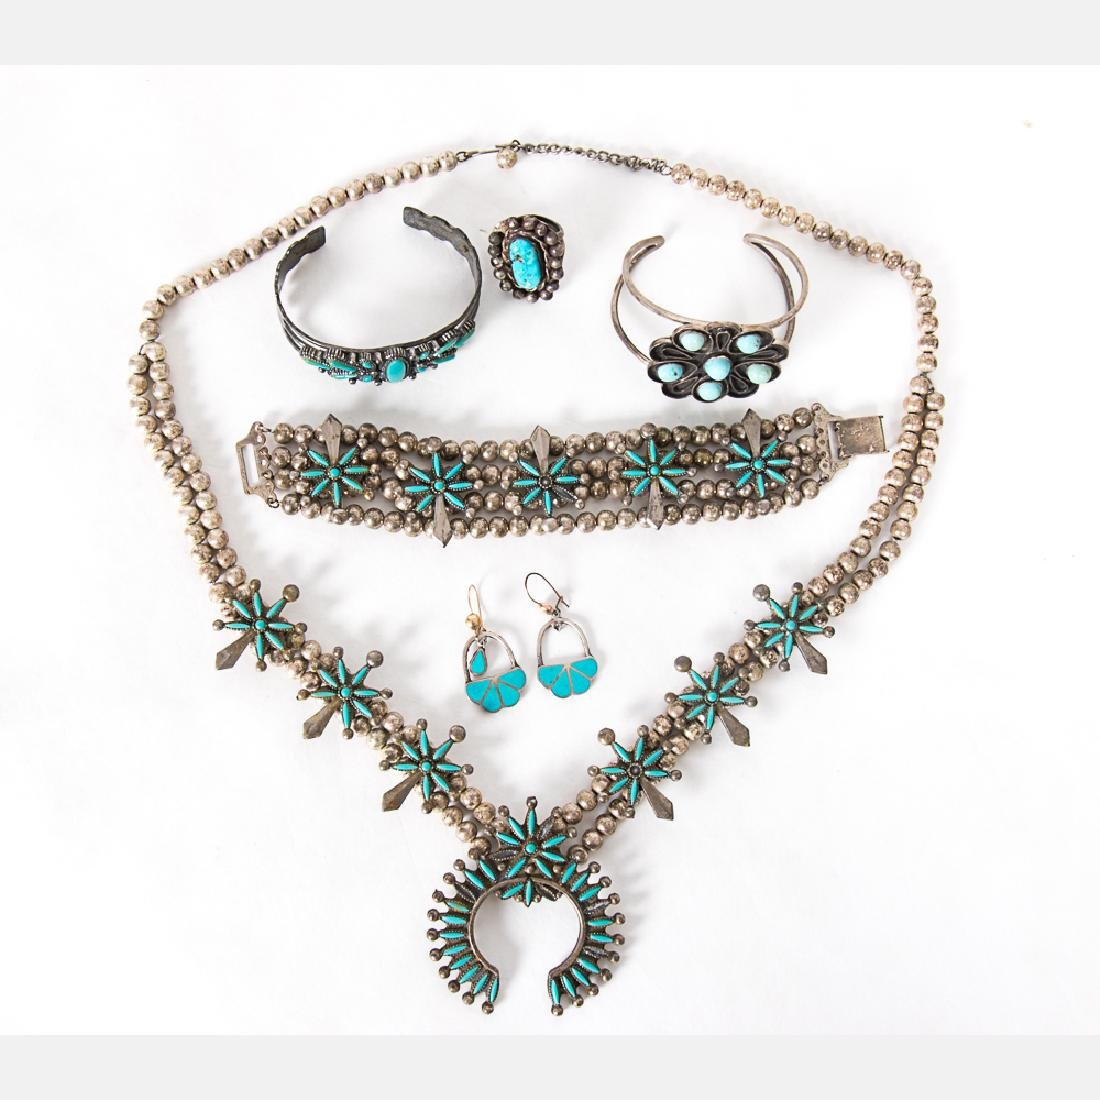 A Collection of Navajo Silver and Turquoise Jewelry,